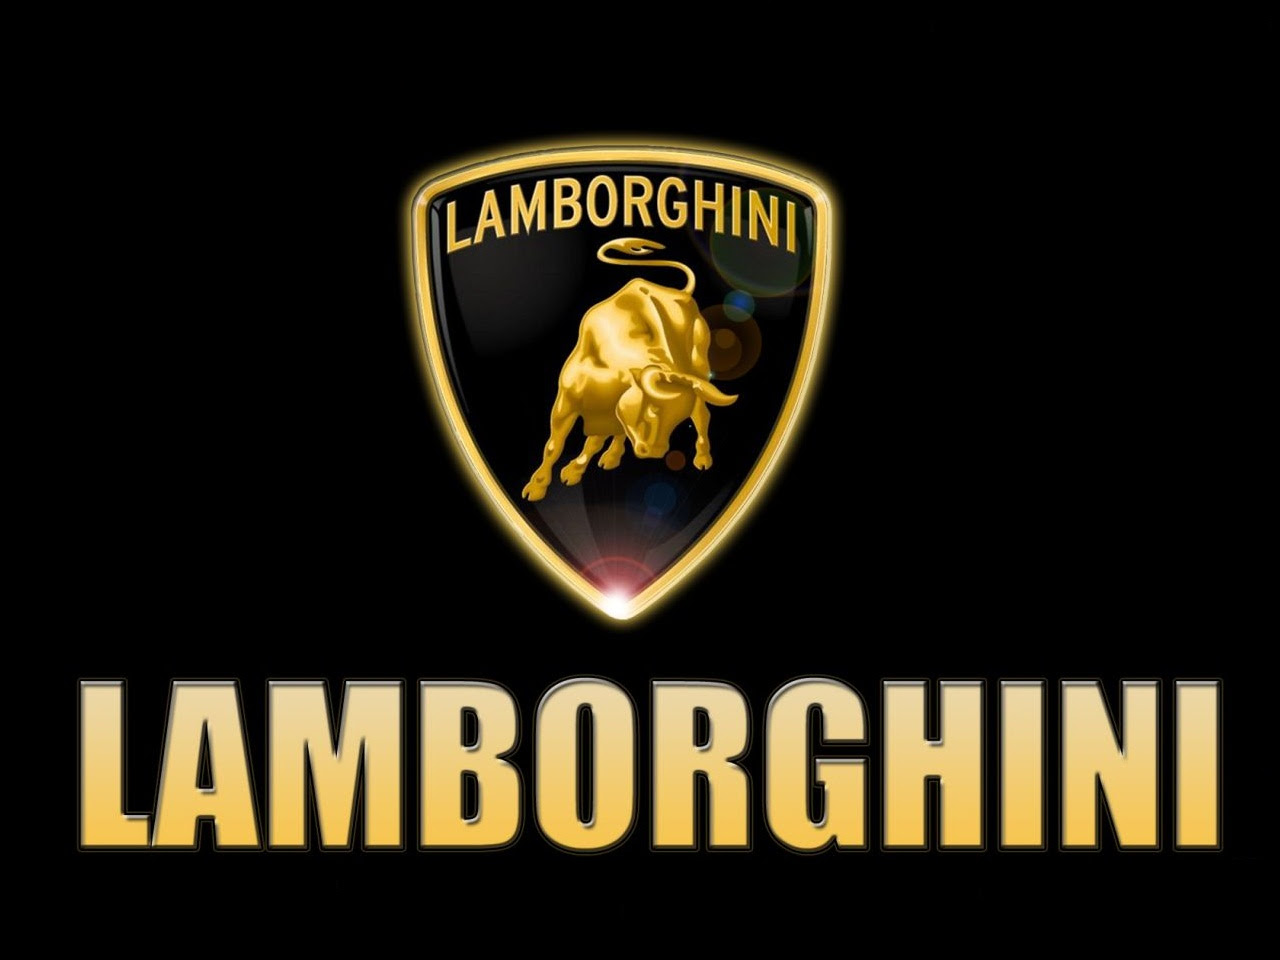 lamborghini logo wallpaper mobile ...